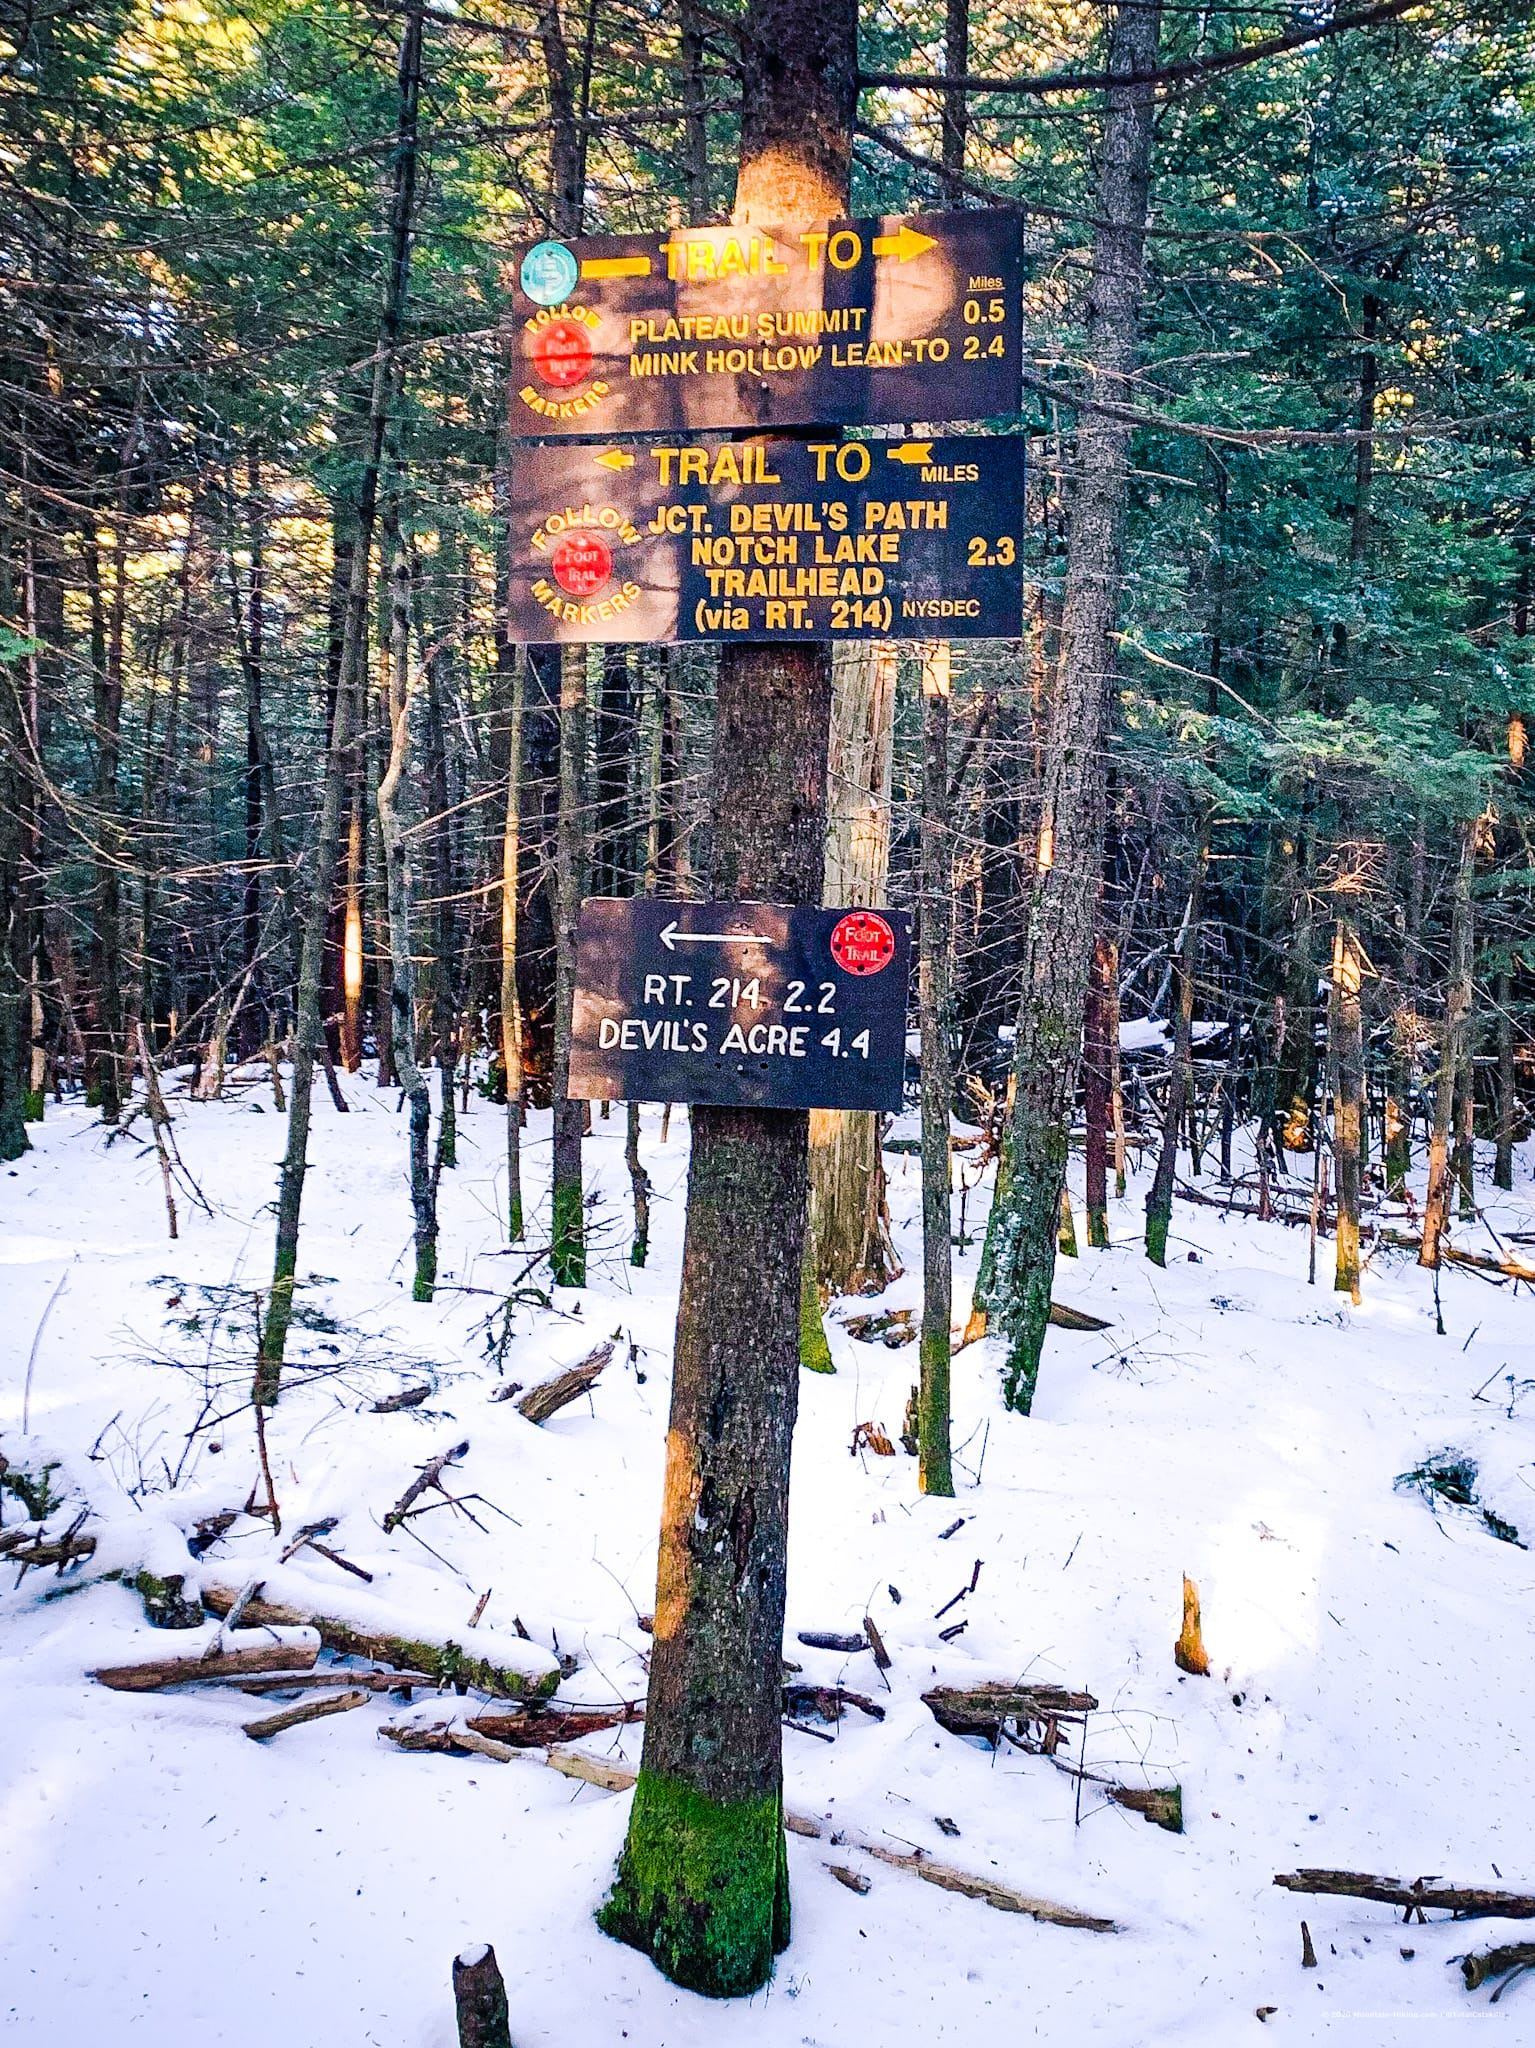 Trail intersection signposts